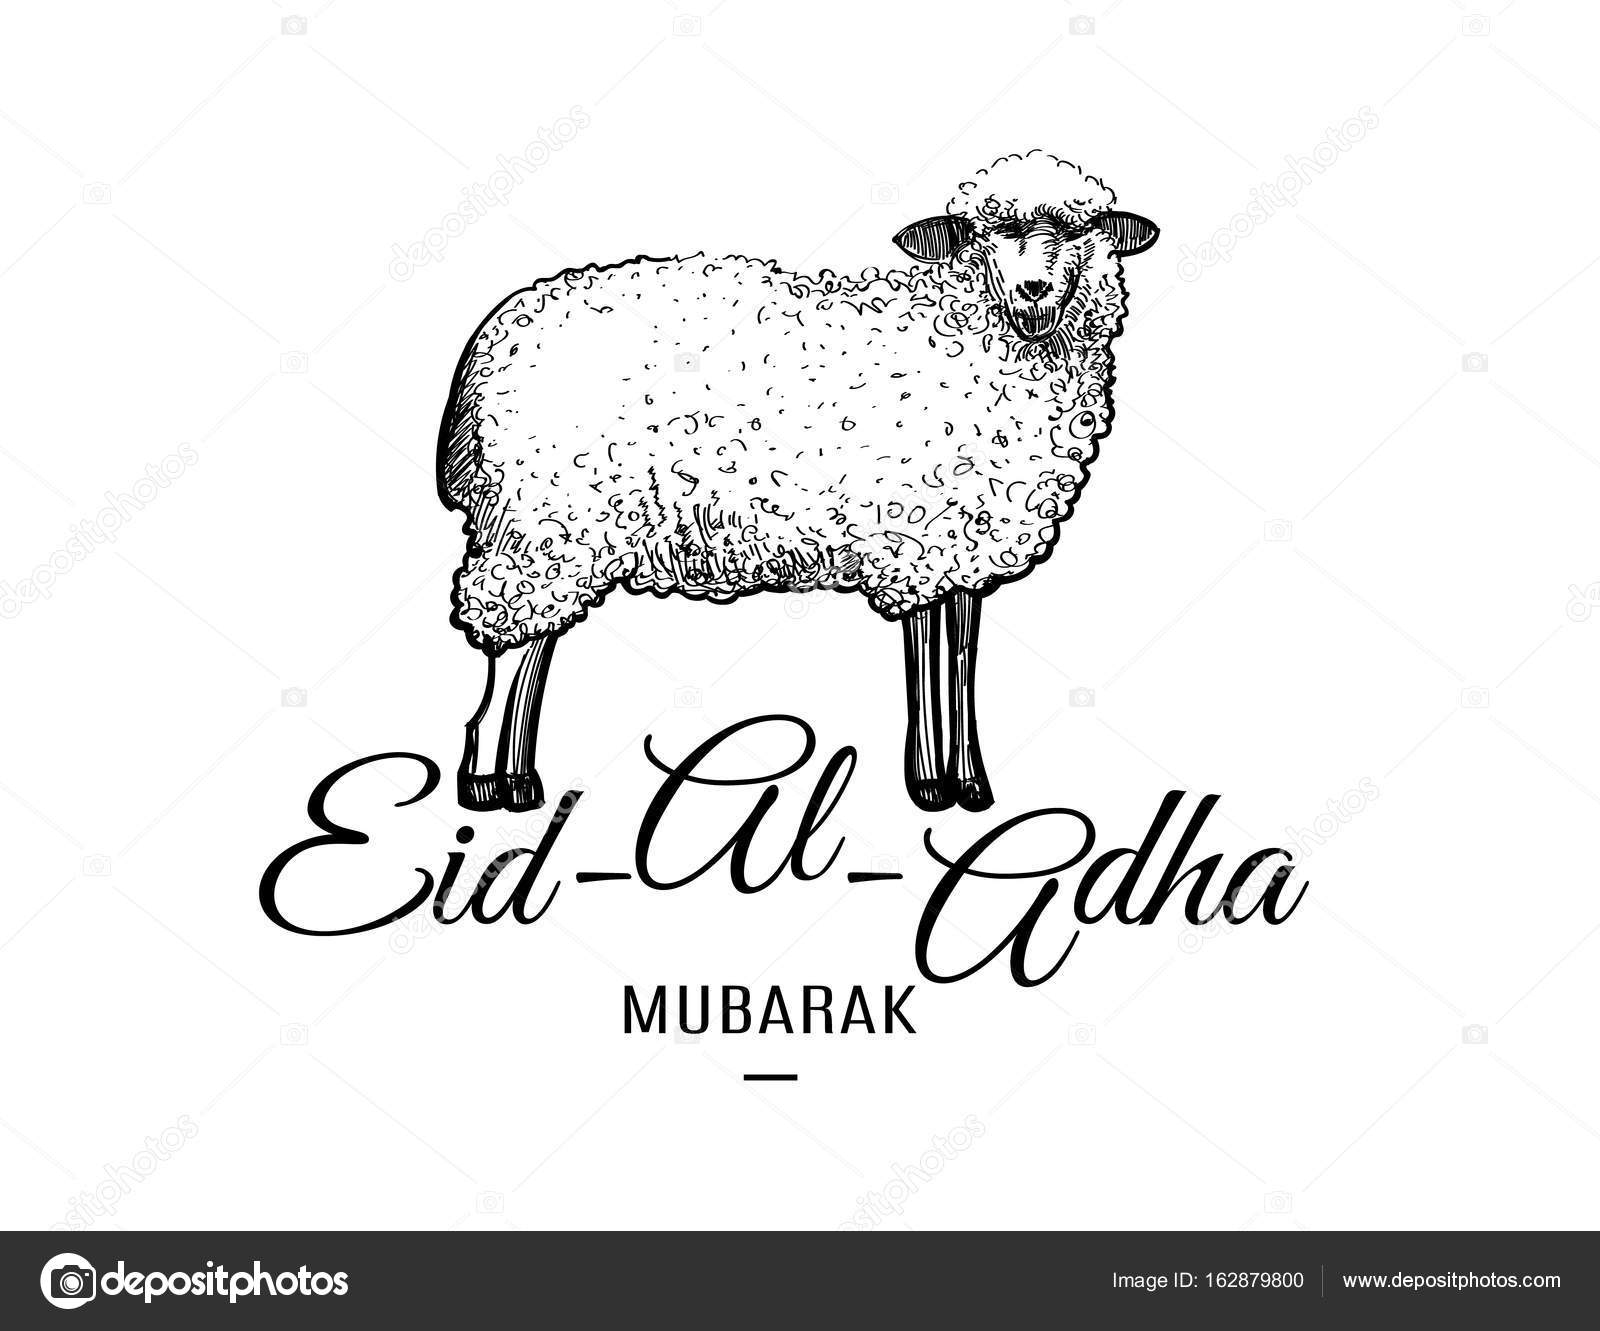 eid al adha greeting card template with hand drawn sheep isolated on